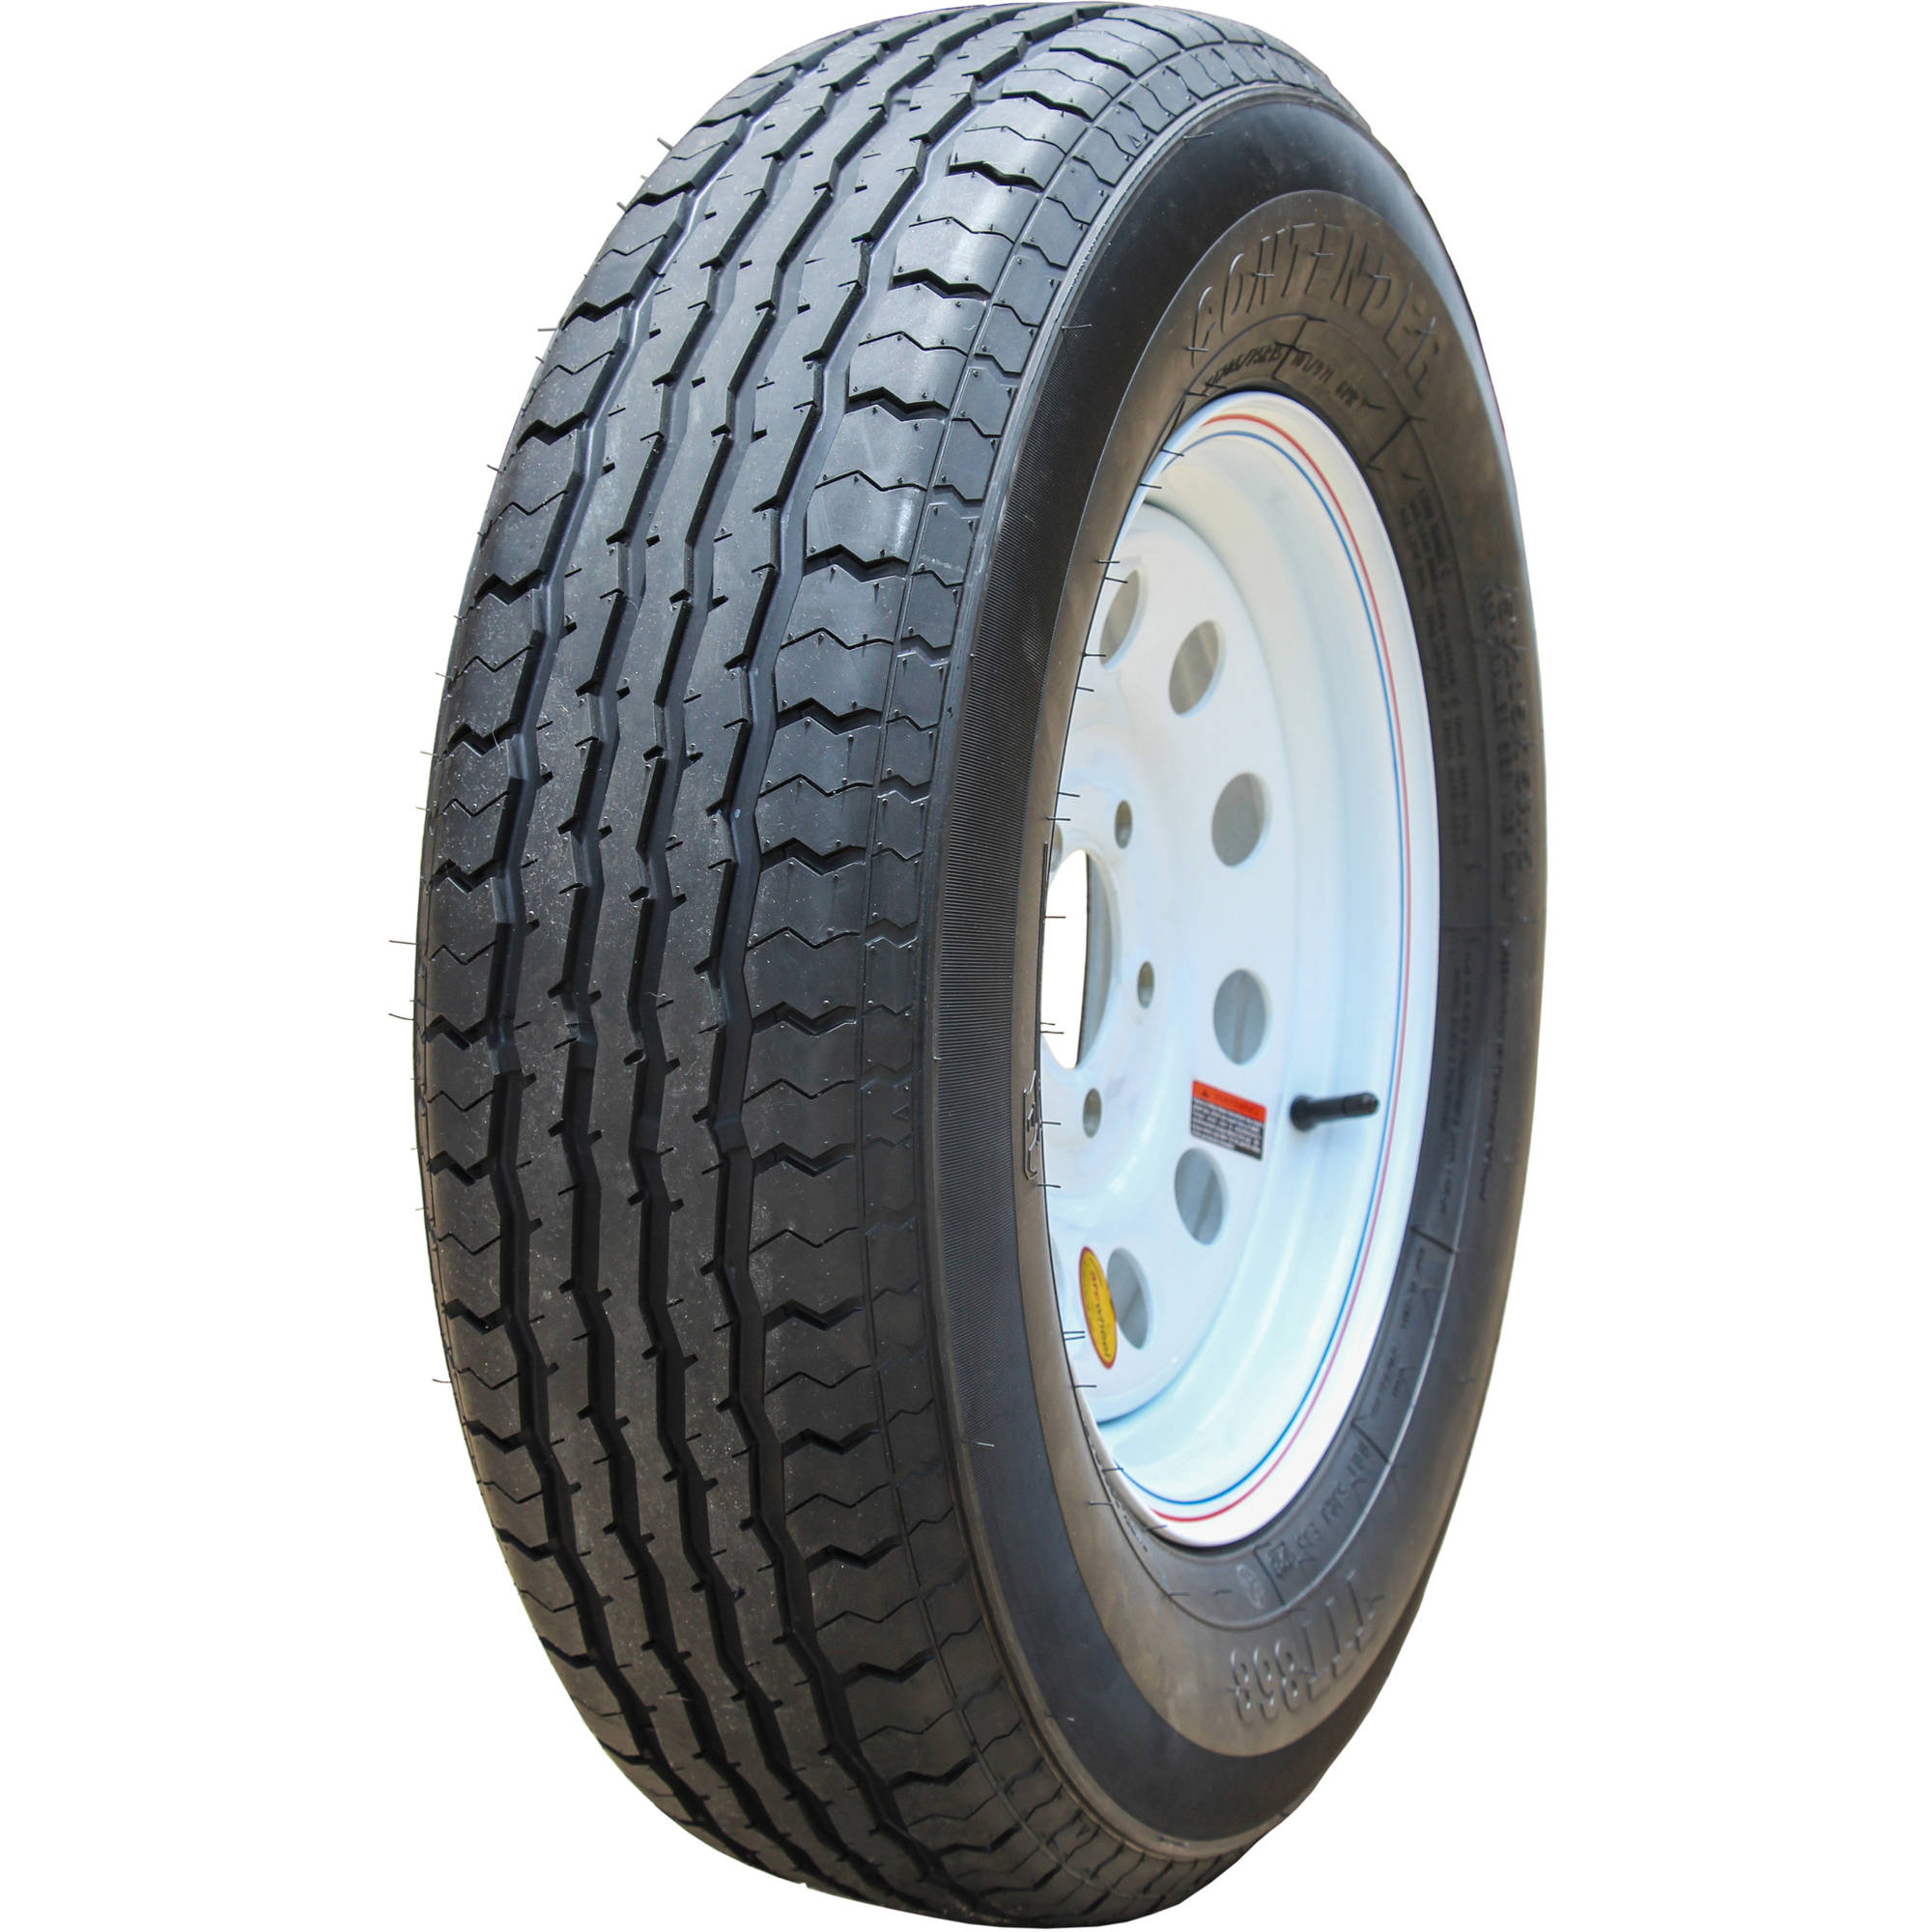 St225 75r15 10 Ply Trailer King Ii St Radial Tire Walmart Com